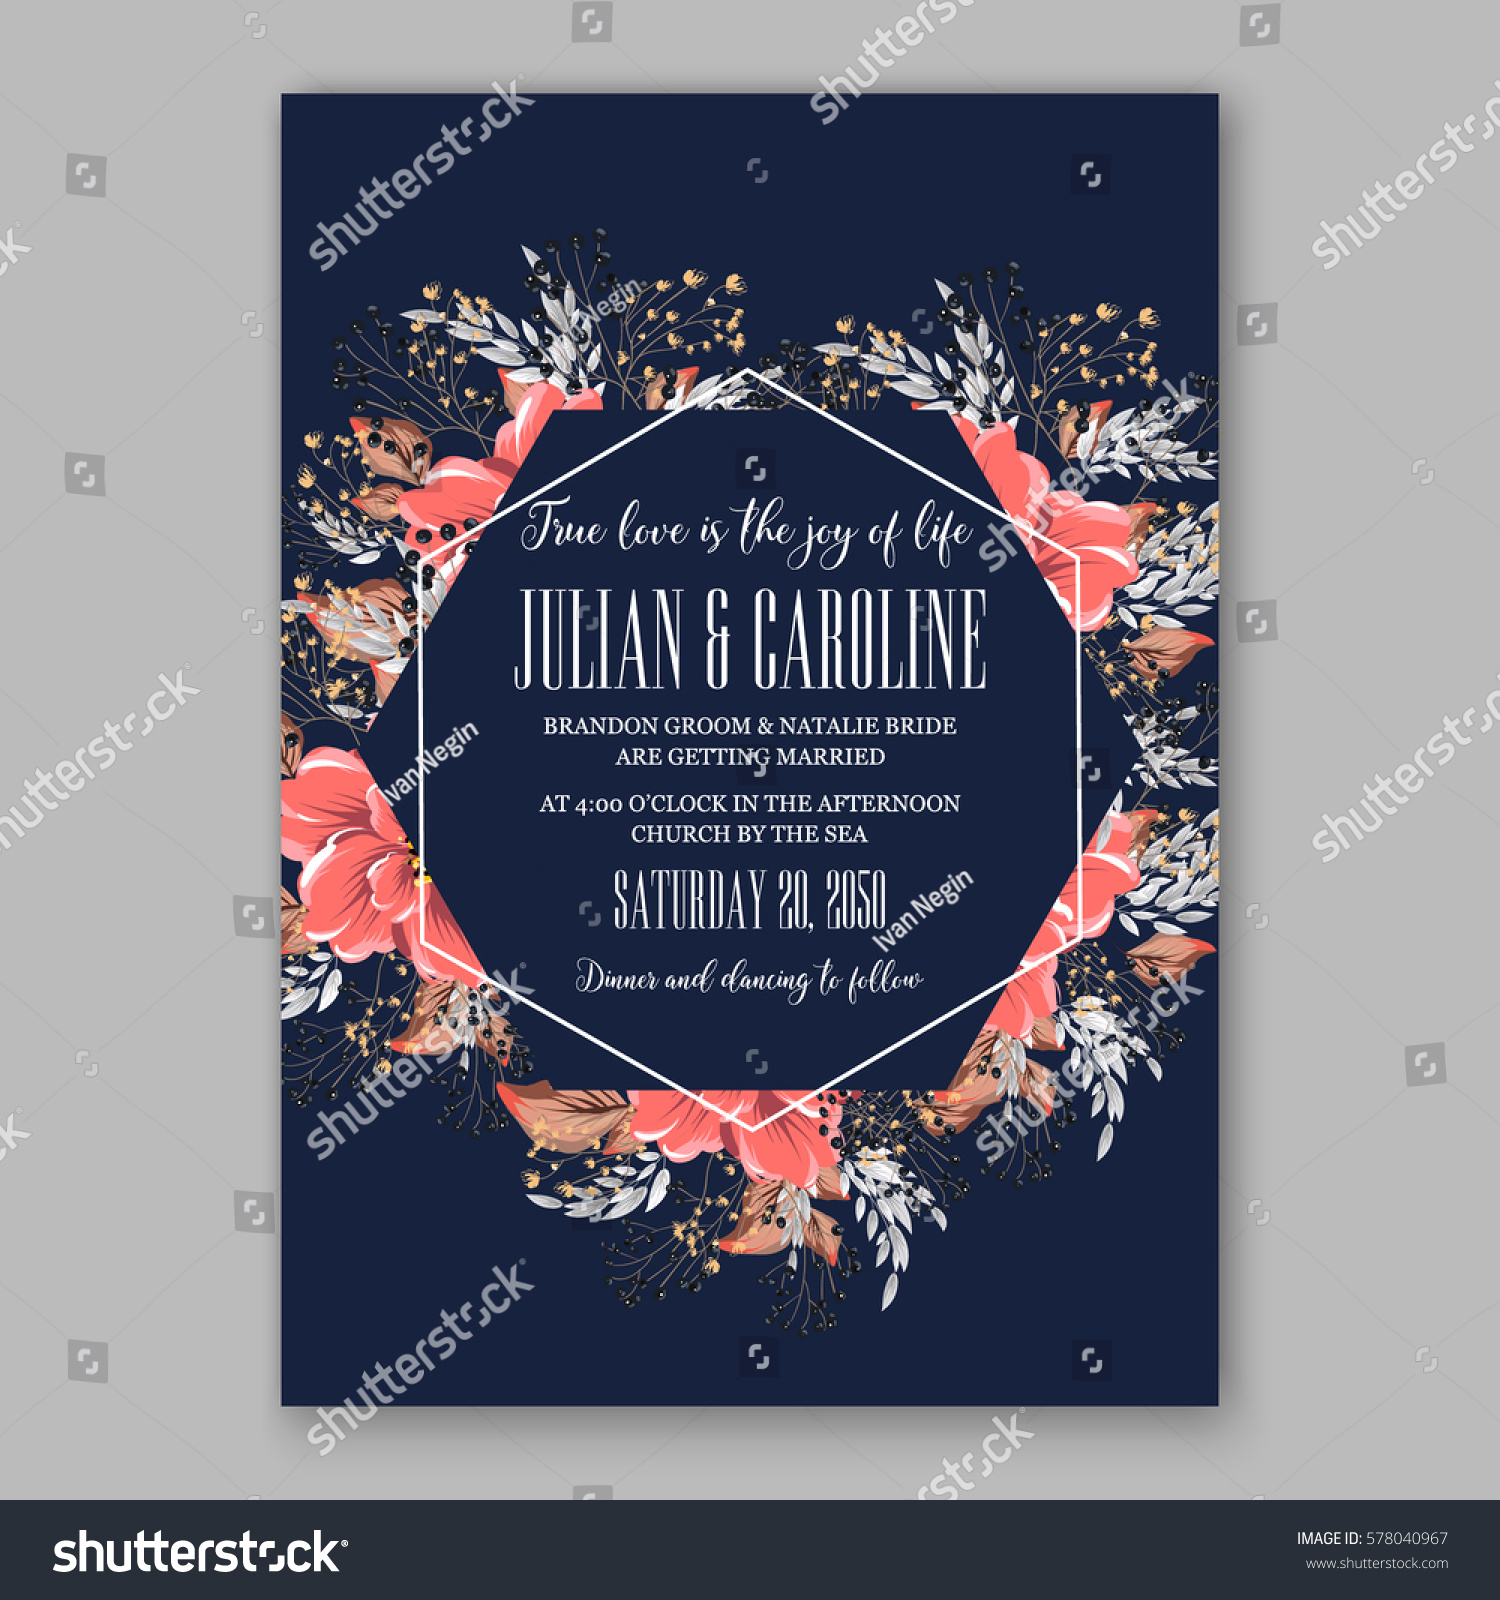 Wedding invitation card tropical poinsettia peony stock vector wedding invitation card tropical poinsettia peony stock vector 578040967 shutterstock stopboris Image collections